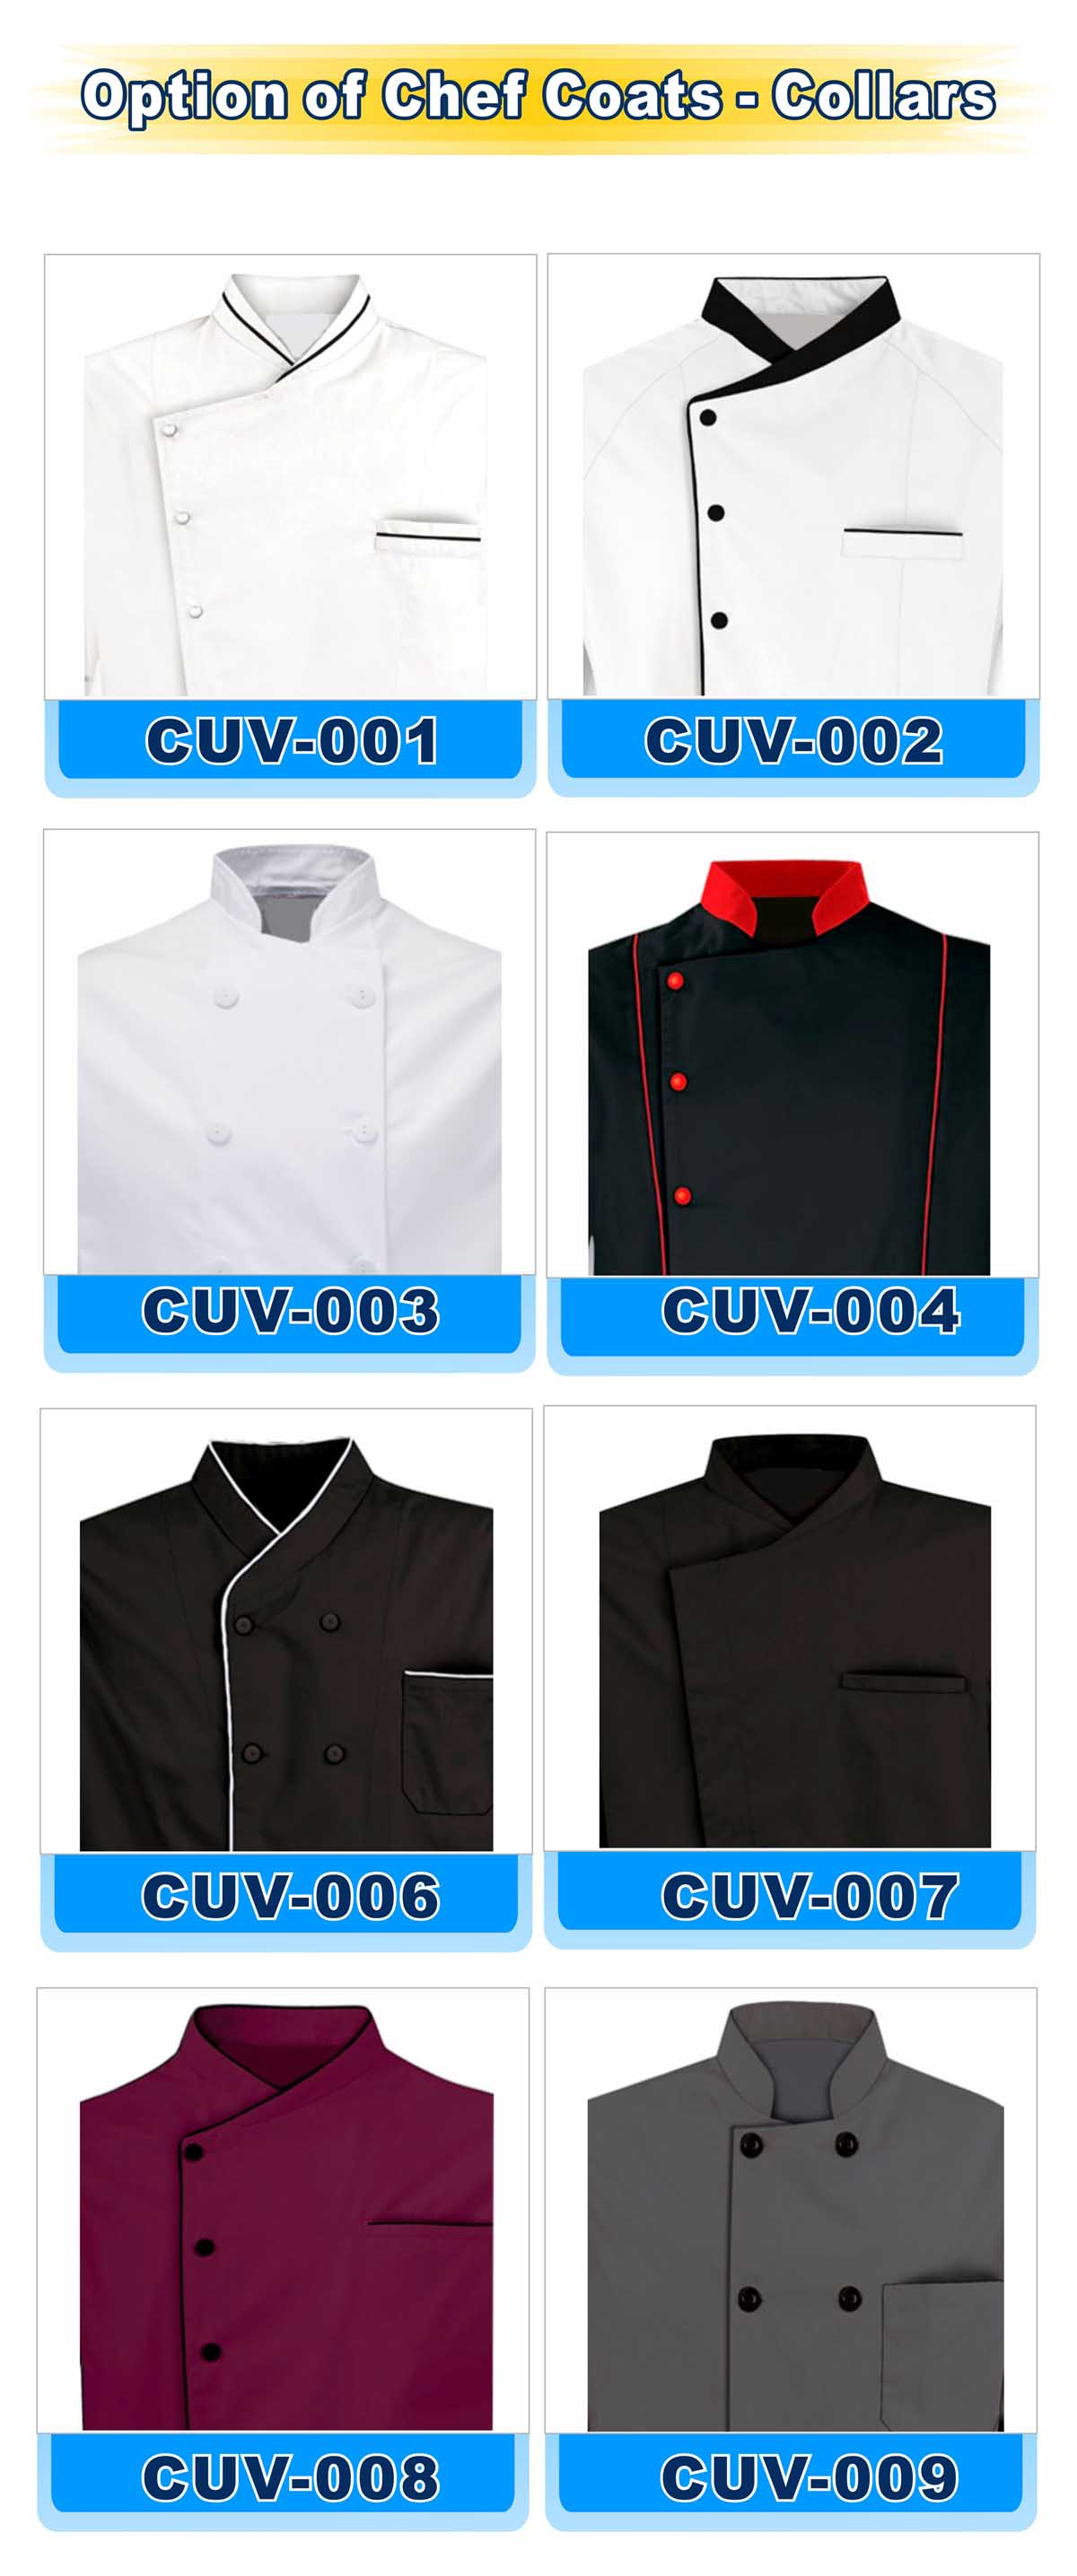 Option of Chef Coats-Collars